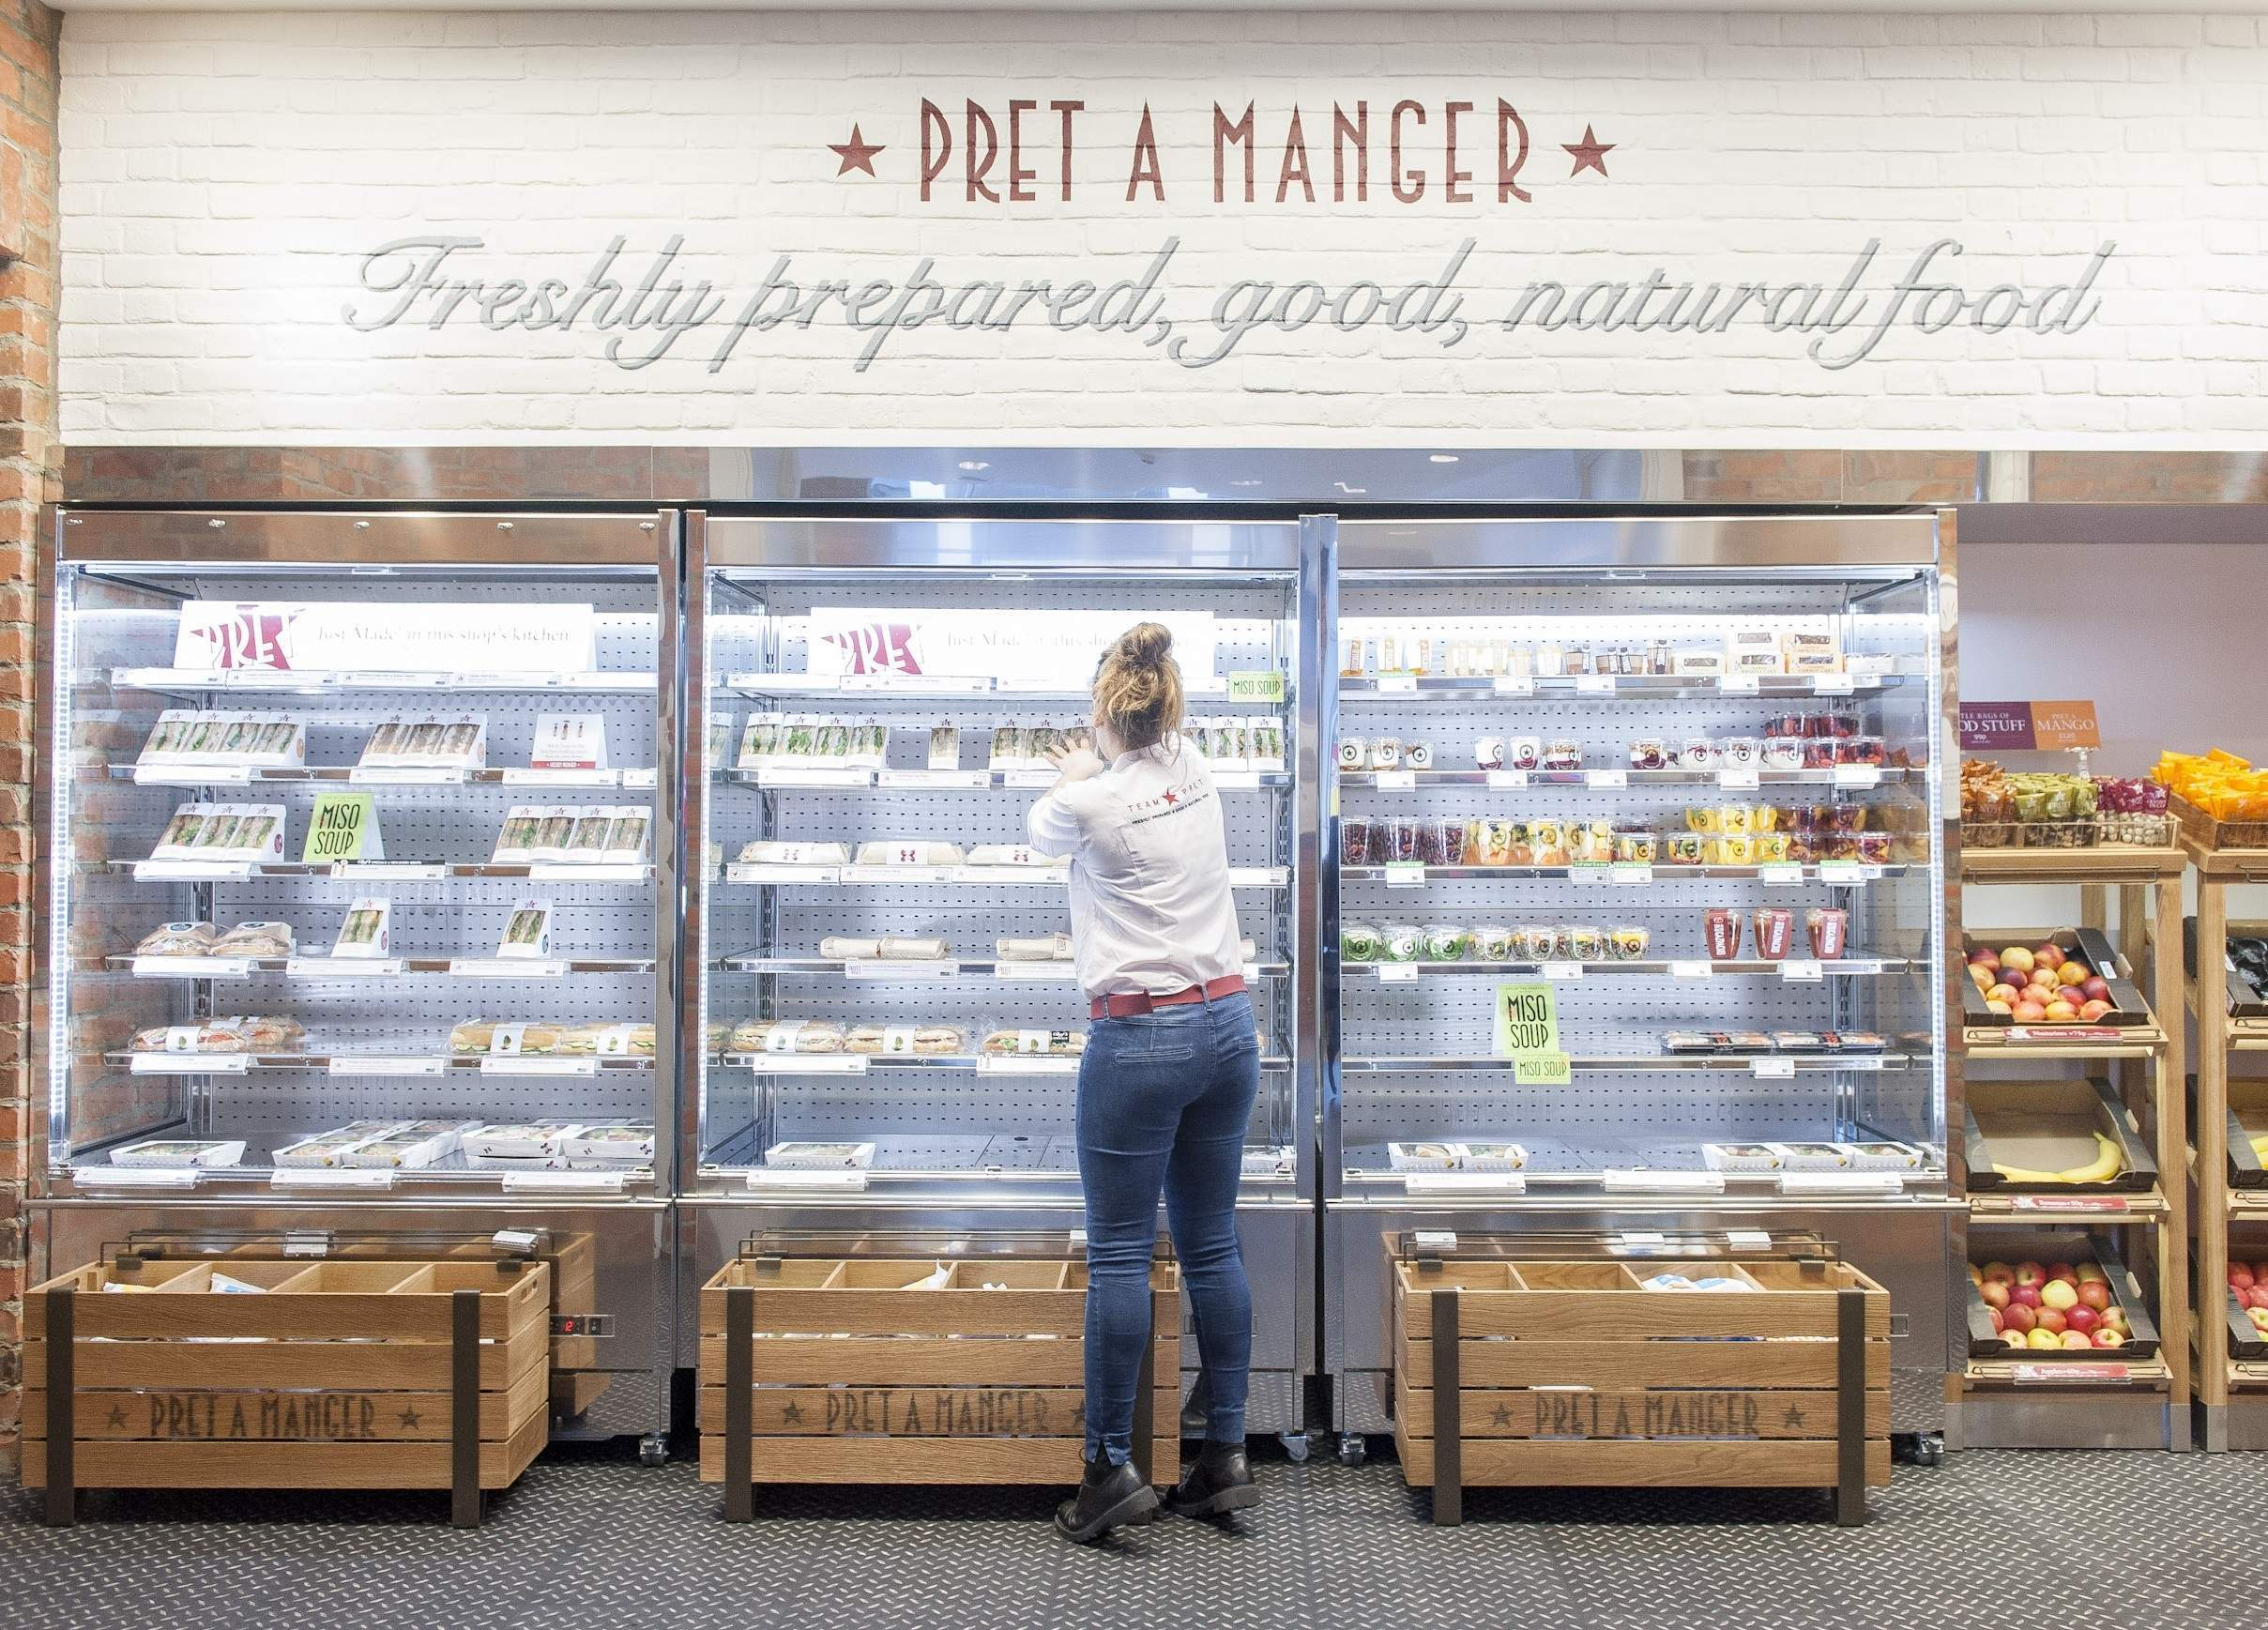 The rumour mill is churning: is Pret A Manger heading for an IPO?